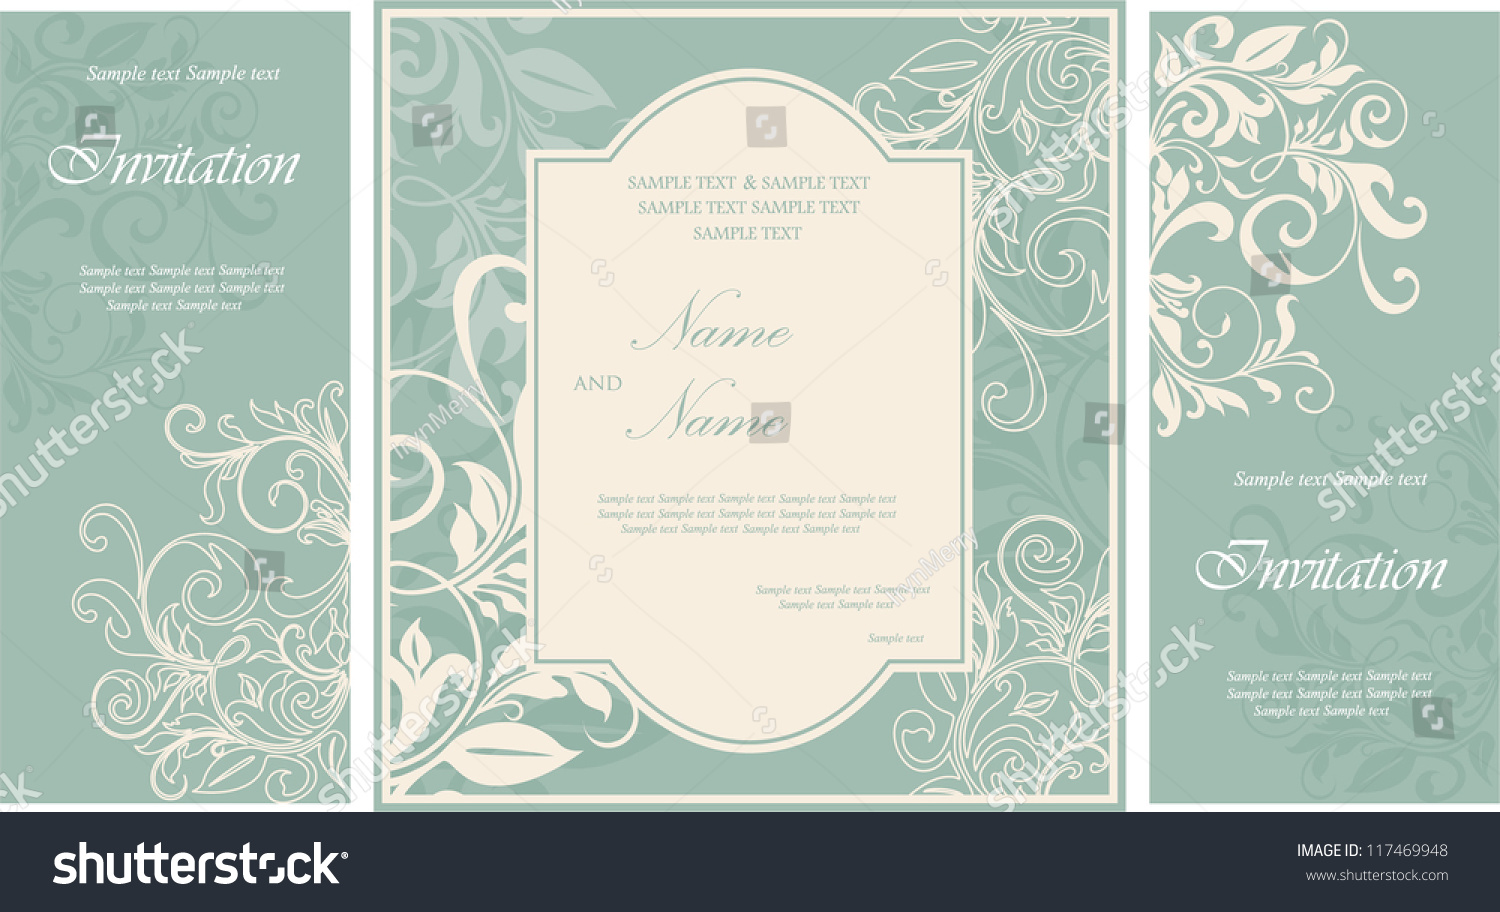 Wedding Invite Card Stock: Wedding Invitation Cards Floral Elements Stock Vector